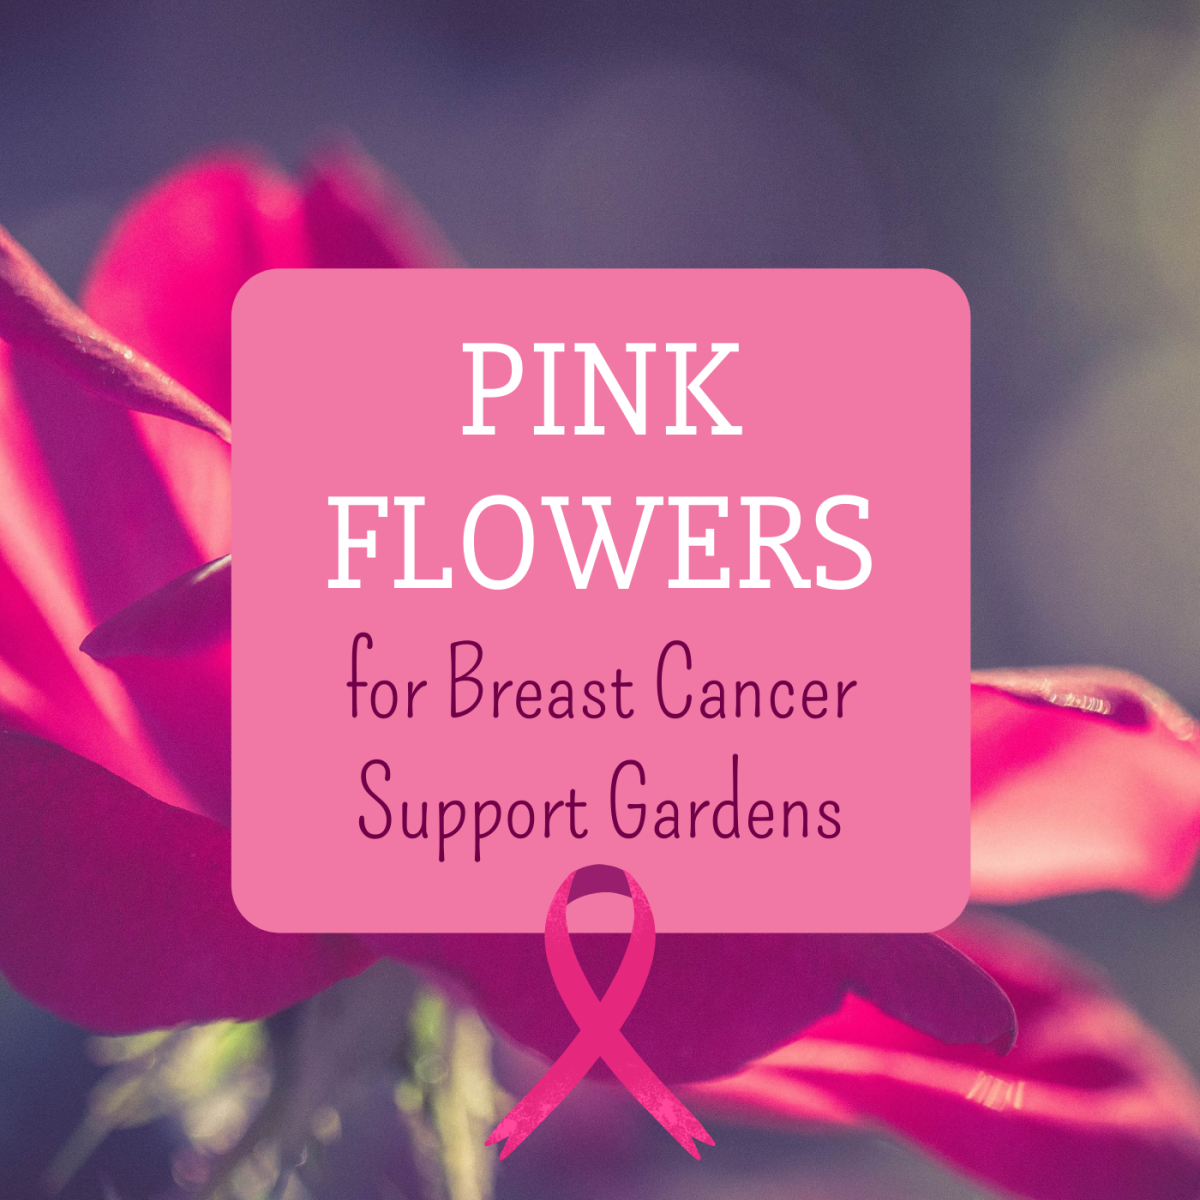 Show your support for Breast Cancer Awareness Month by planting a pink garden that blooms in October!